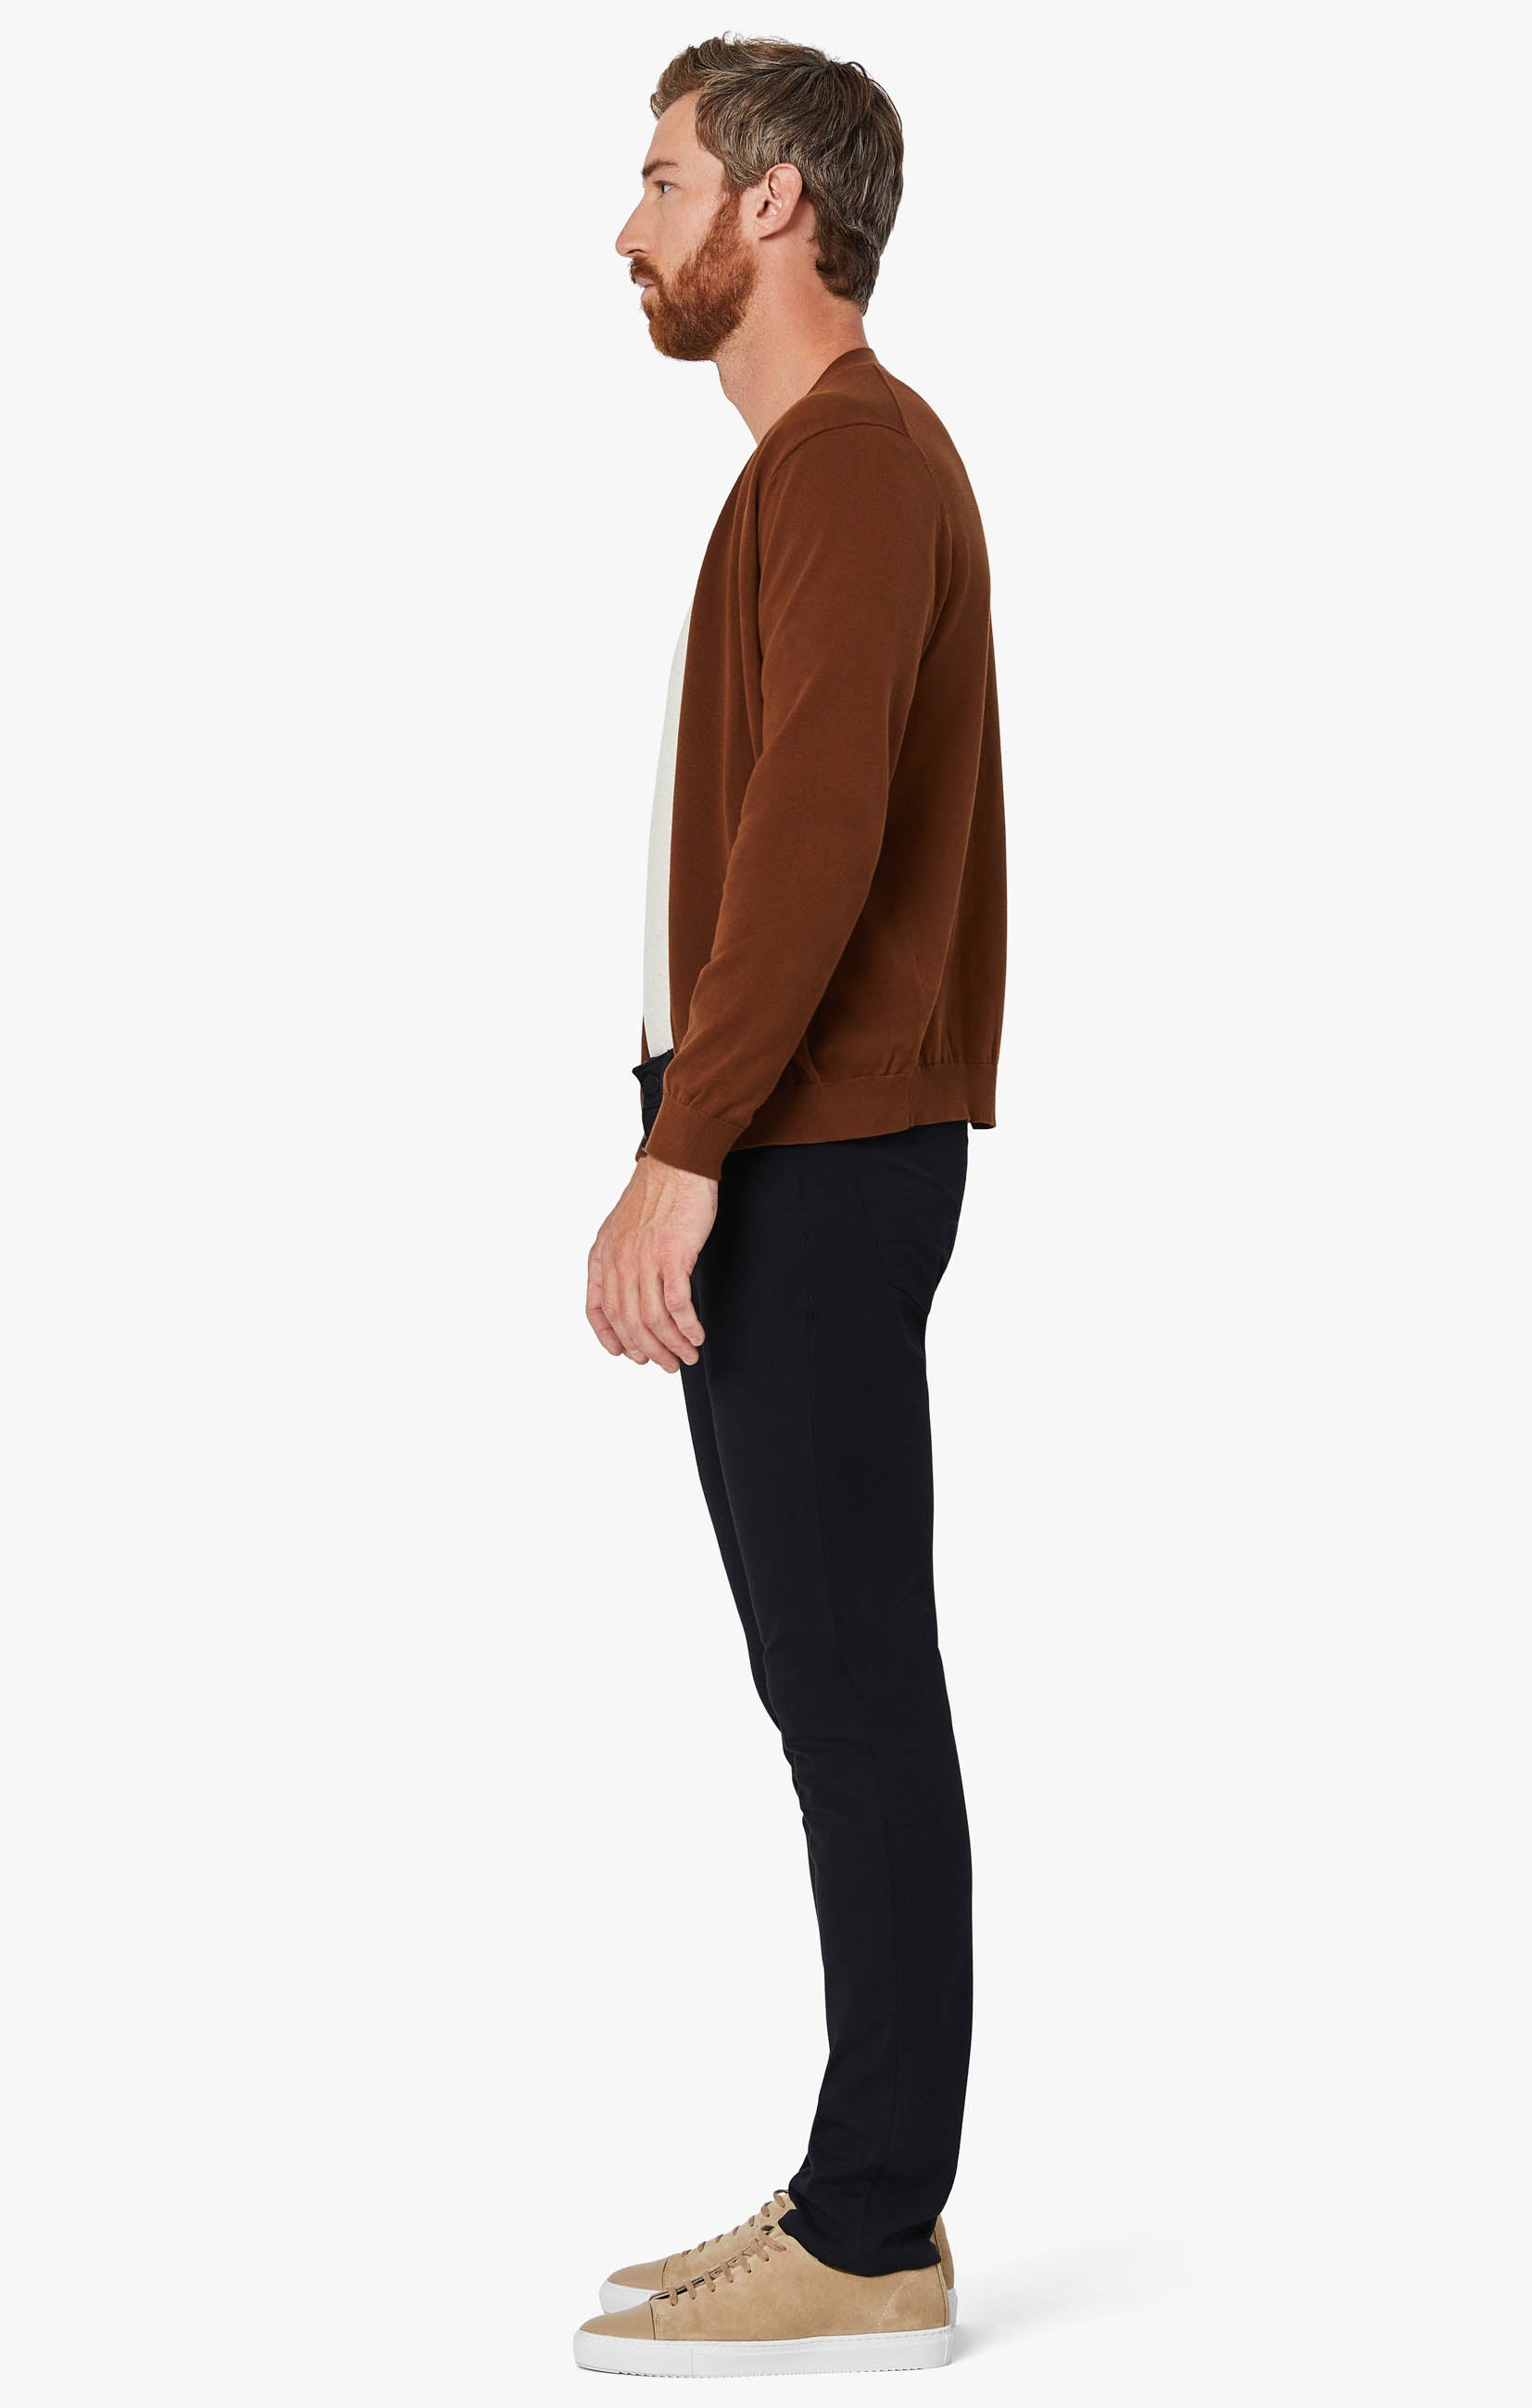 Courage Straight Leg Pants in Navy Winter Cashmere Image 9